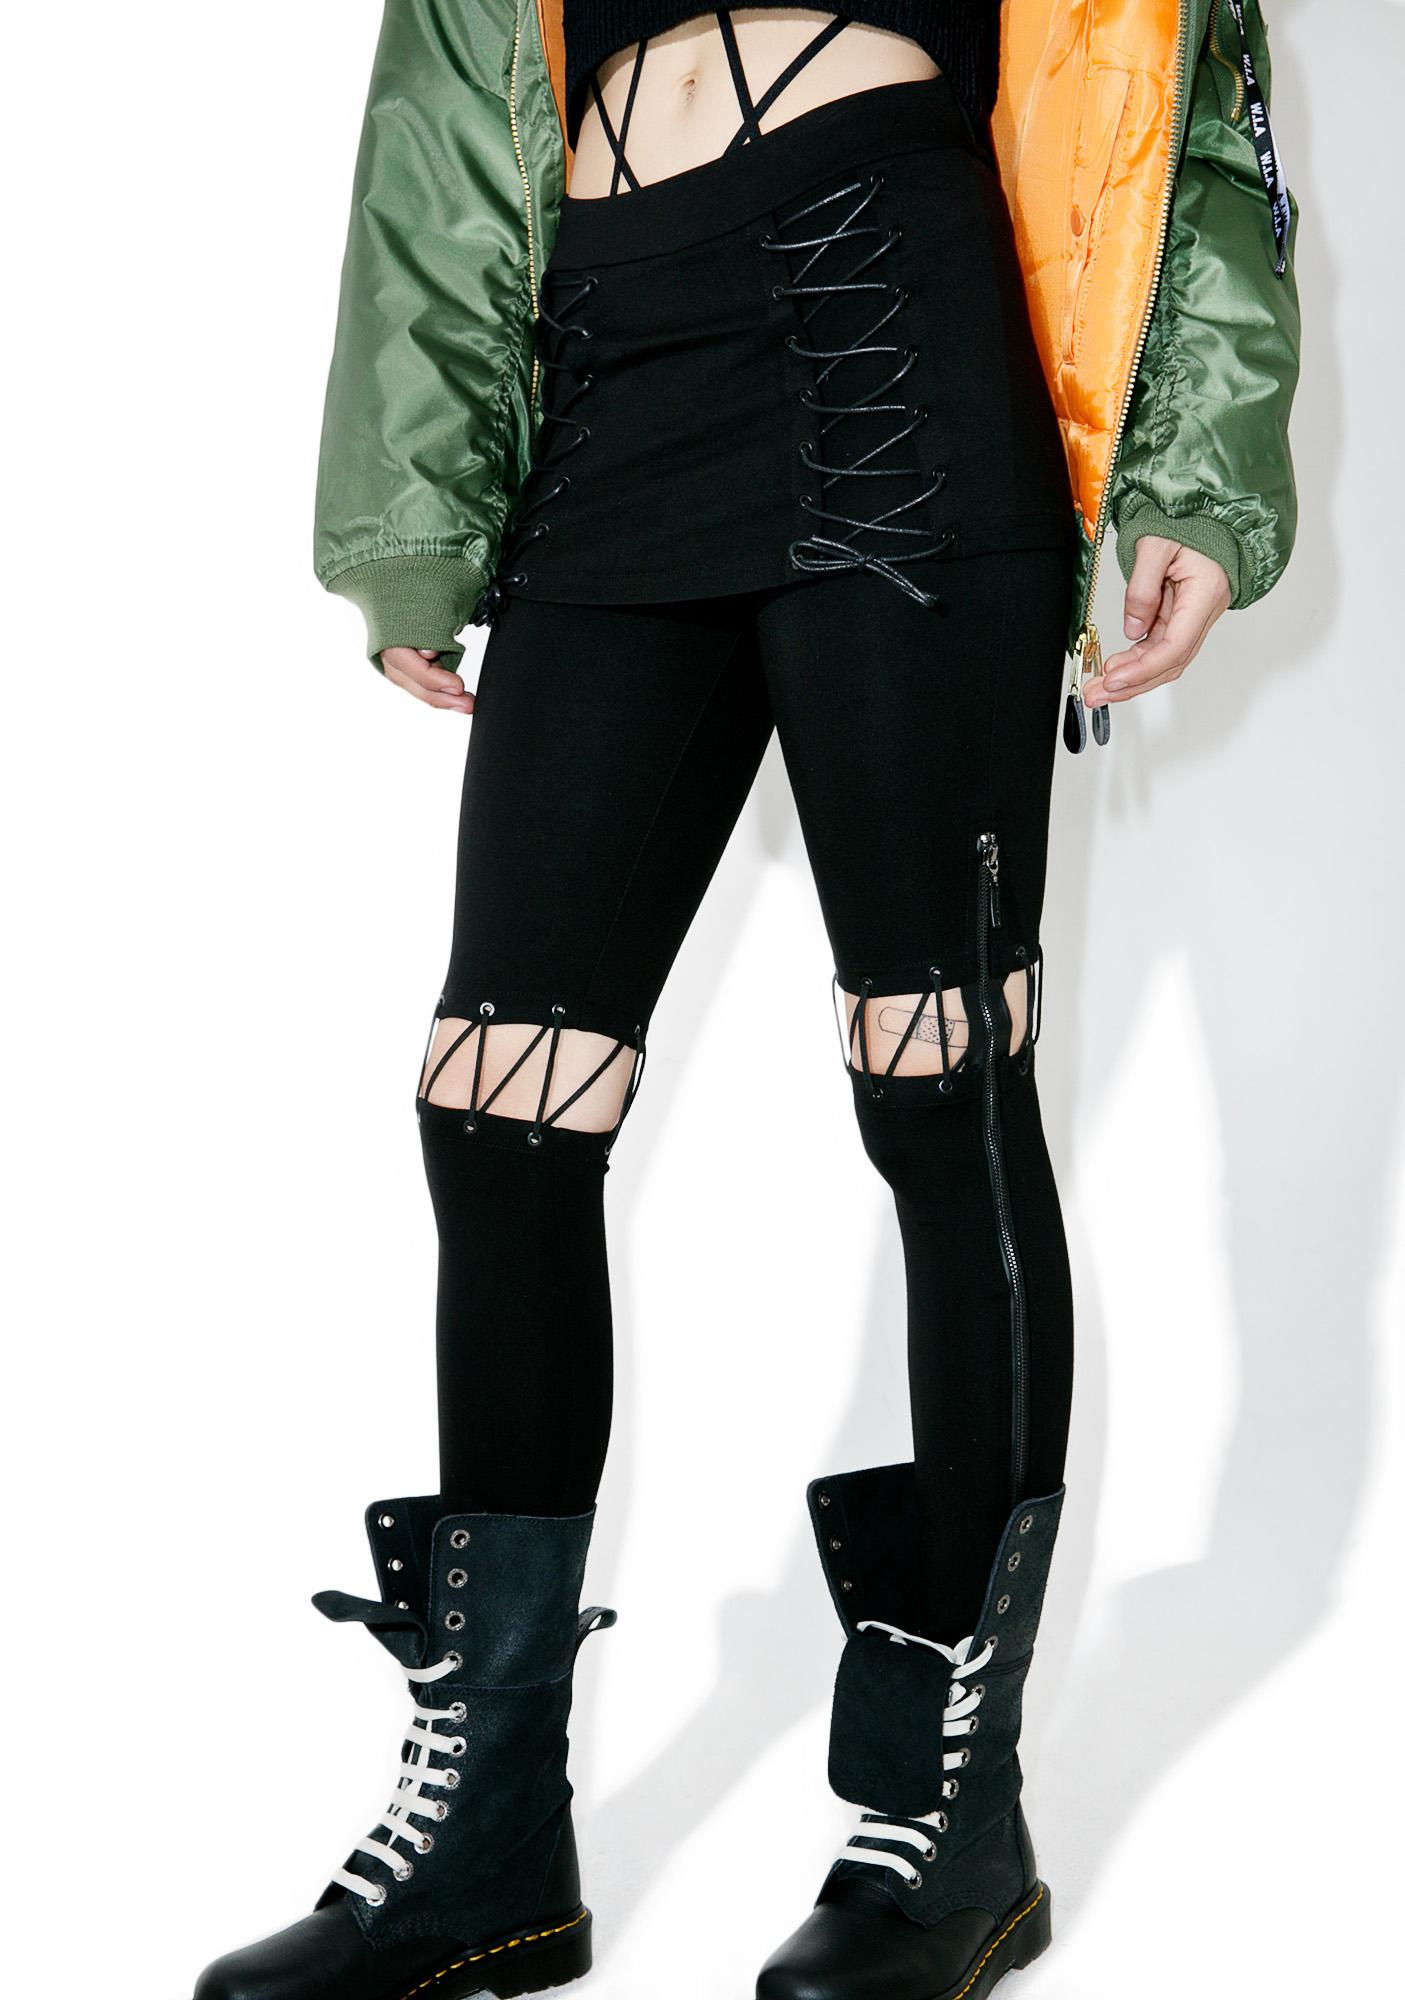 Punk Rave A Different Story Lace-Up Pants